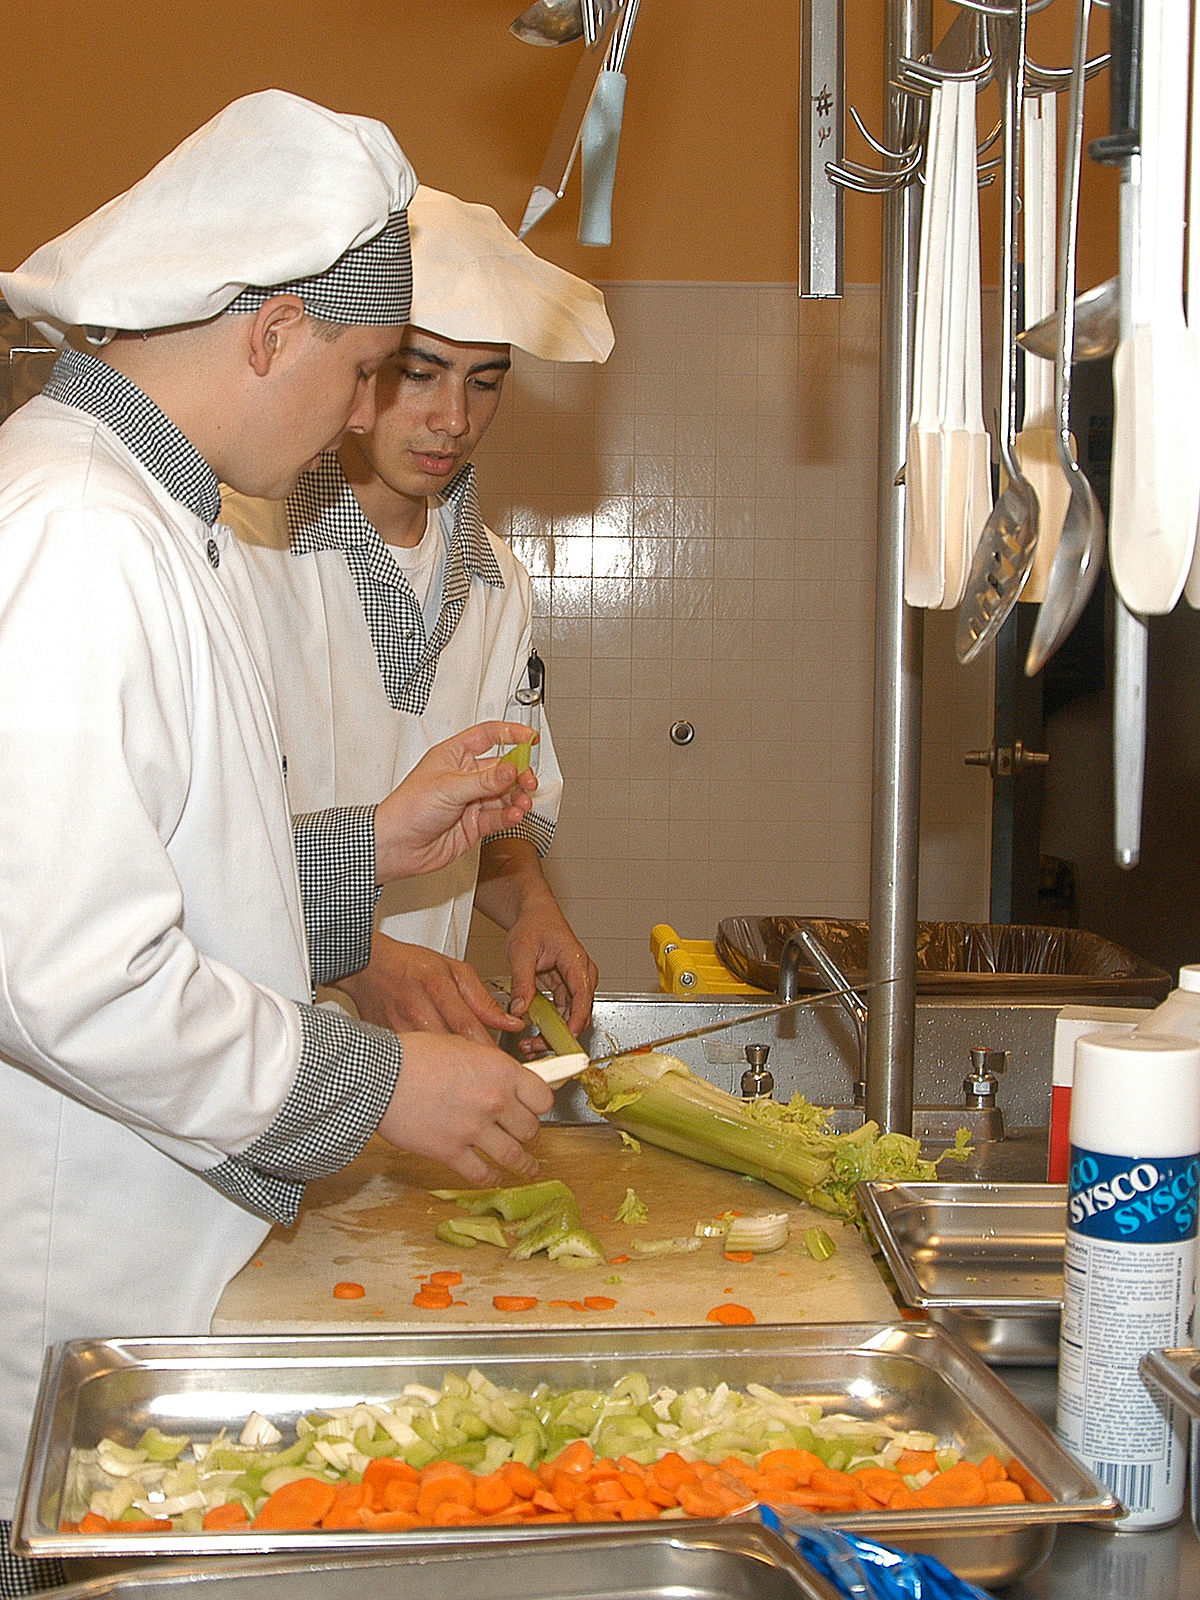 Outline of food preparation   Wikipedia